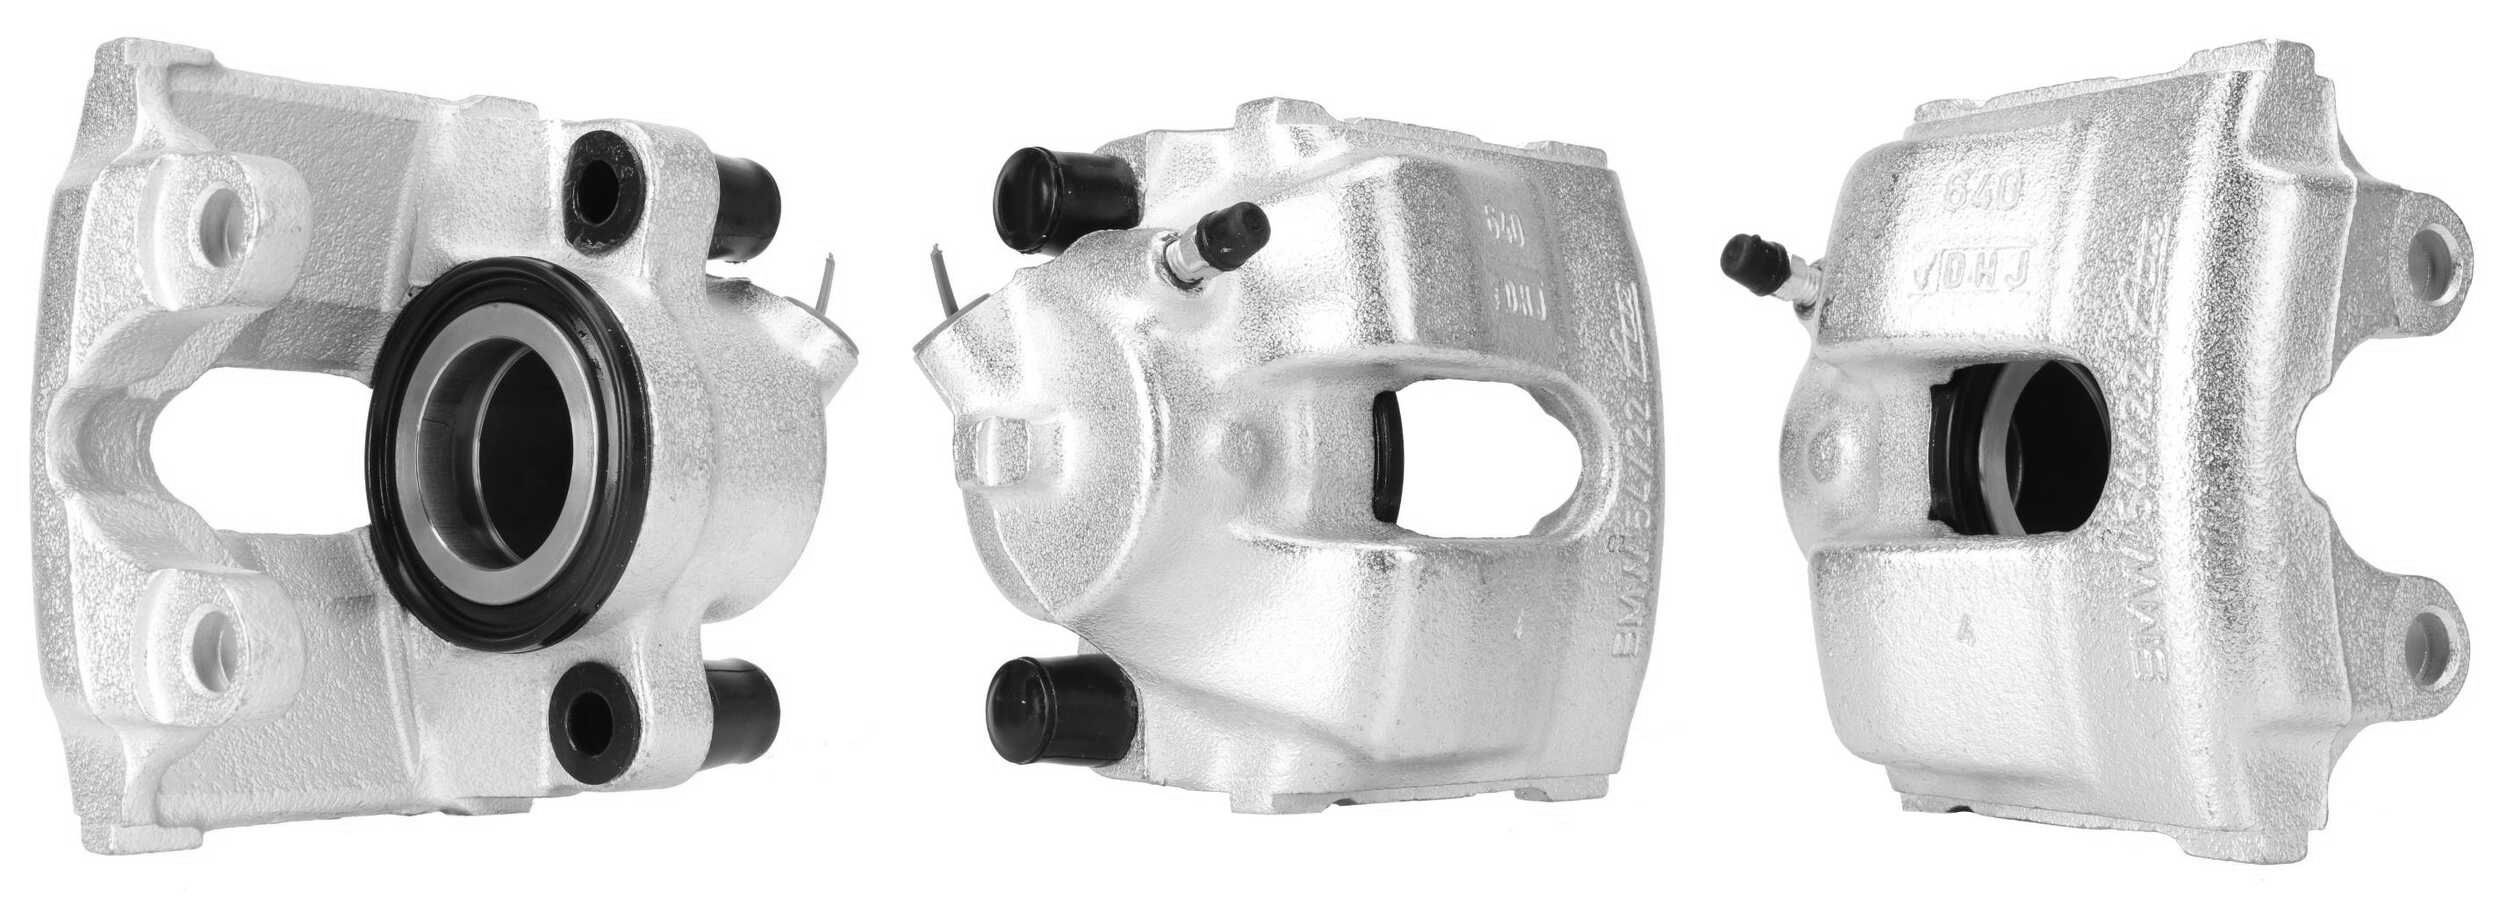 Brake Caliper Front Left BMW 3 Series E36 E46 93-05 Z3 E36 E37 Z4 E85 97-09